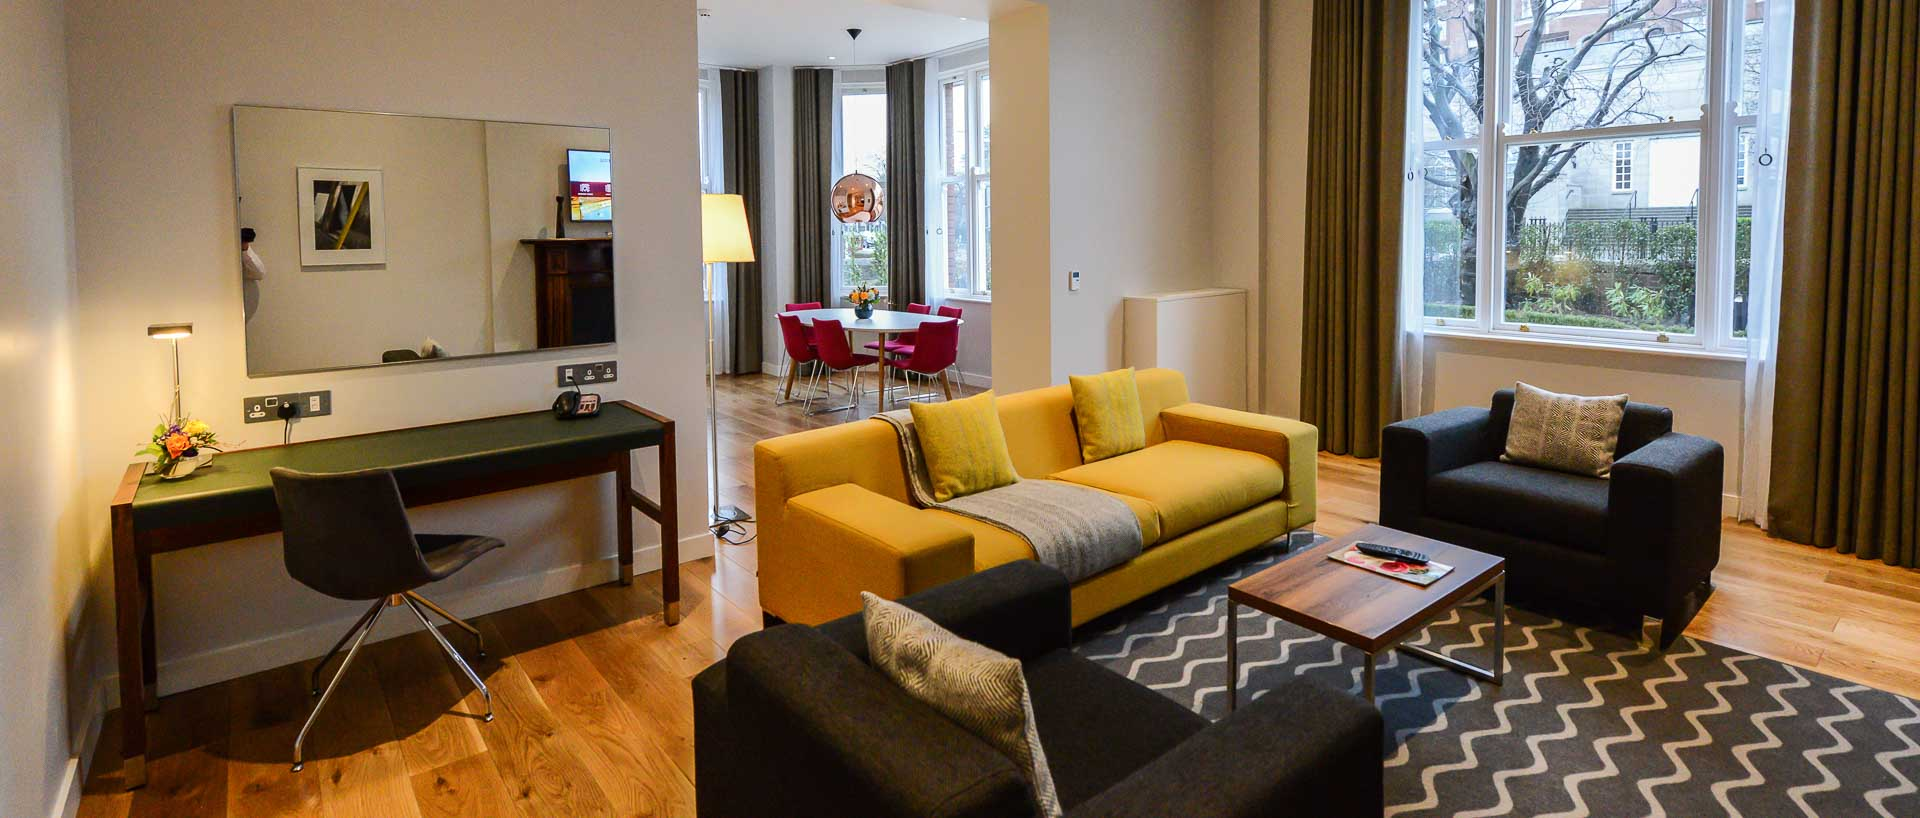 PREMIER SUITES Dublin Ballsbridge fully furnished serviced apartment with open plan lounge and dining room